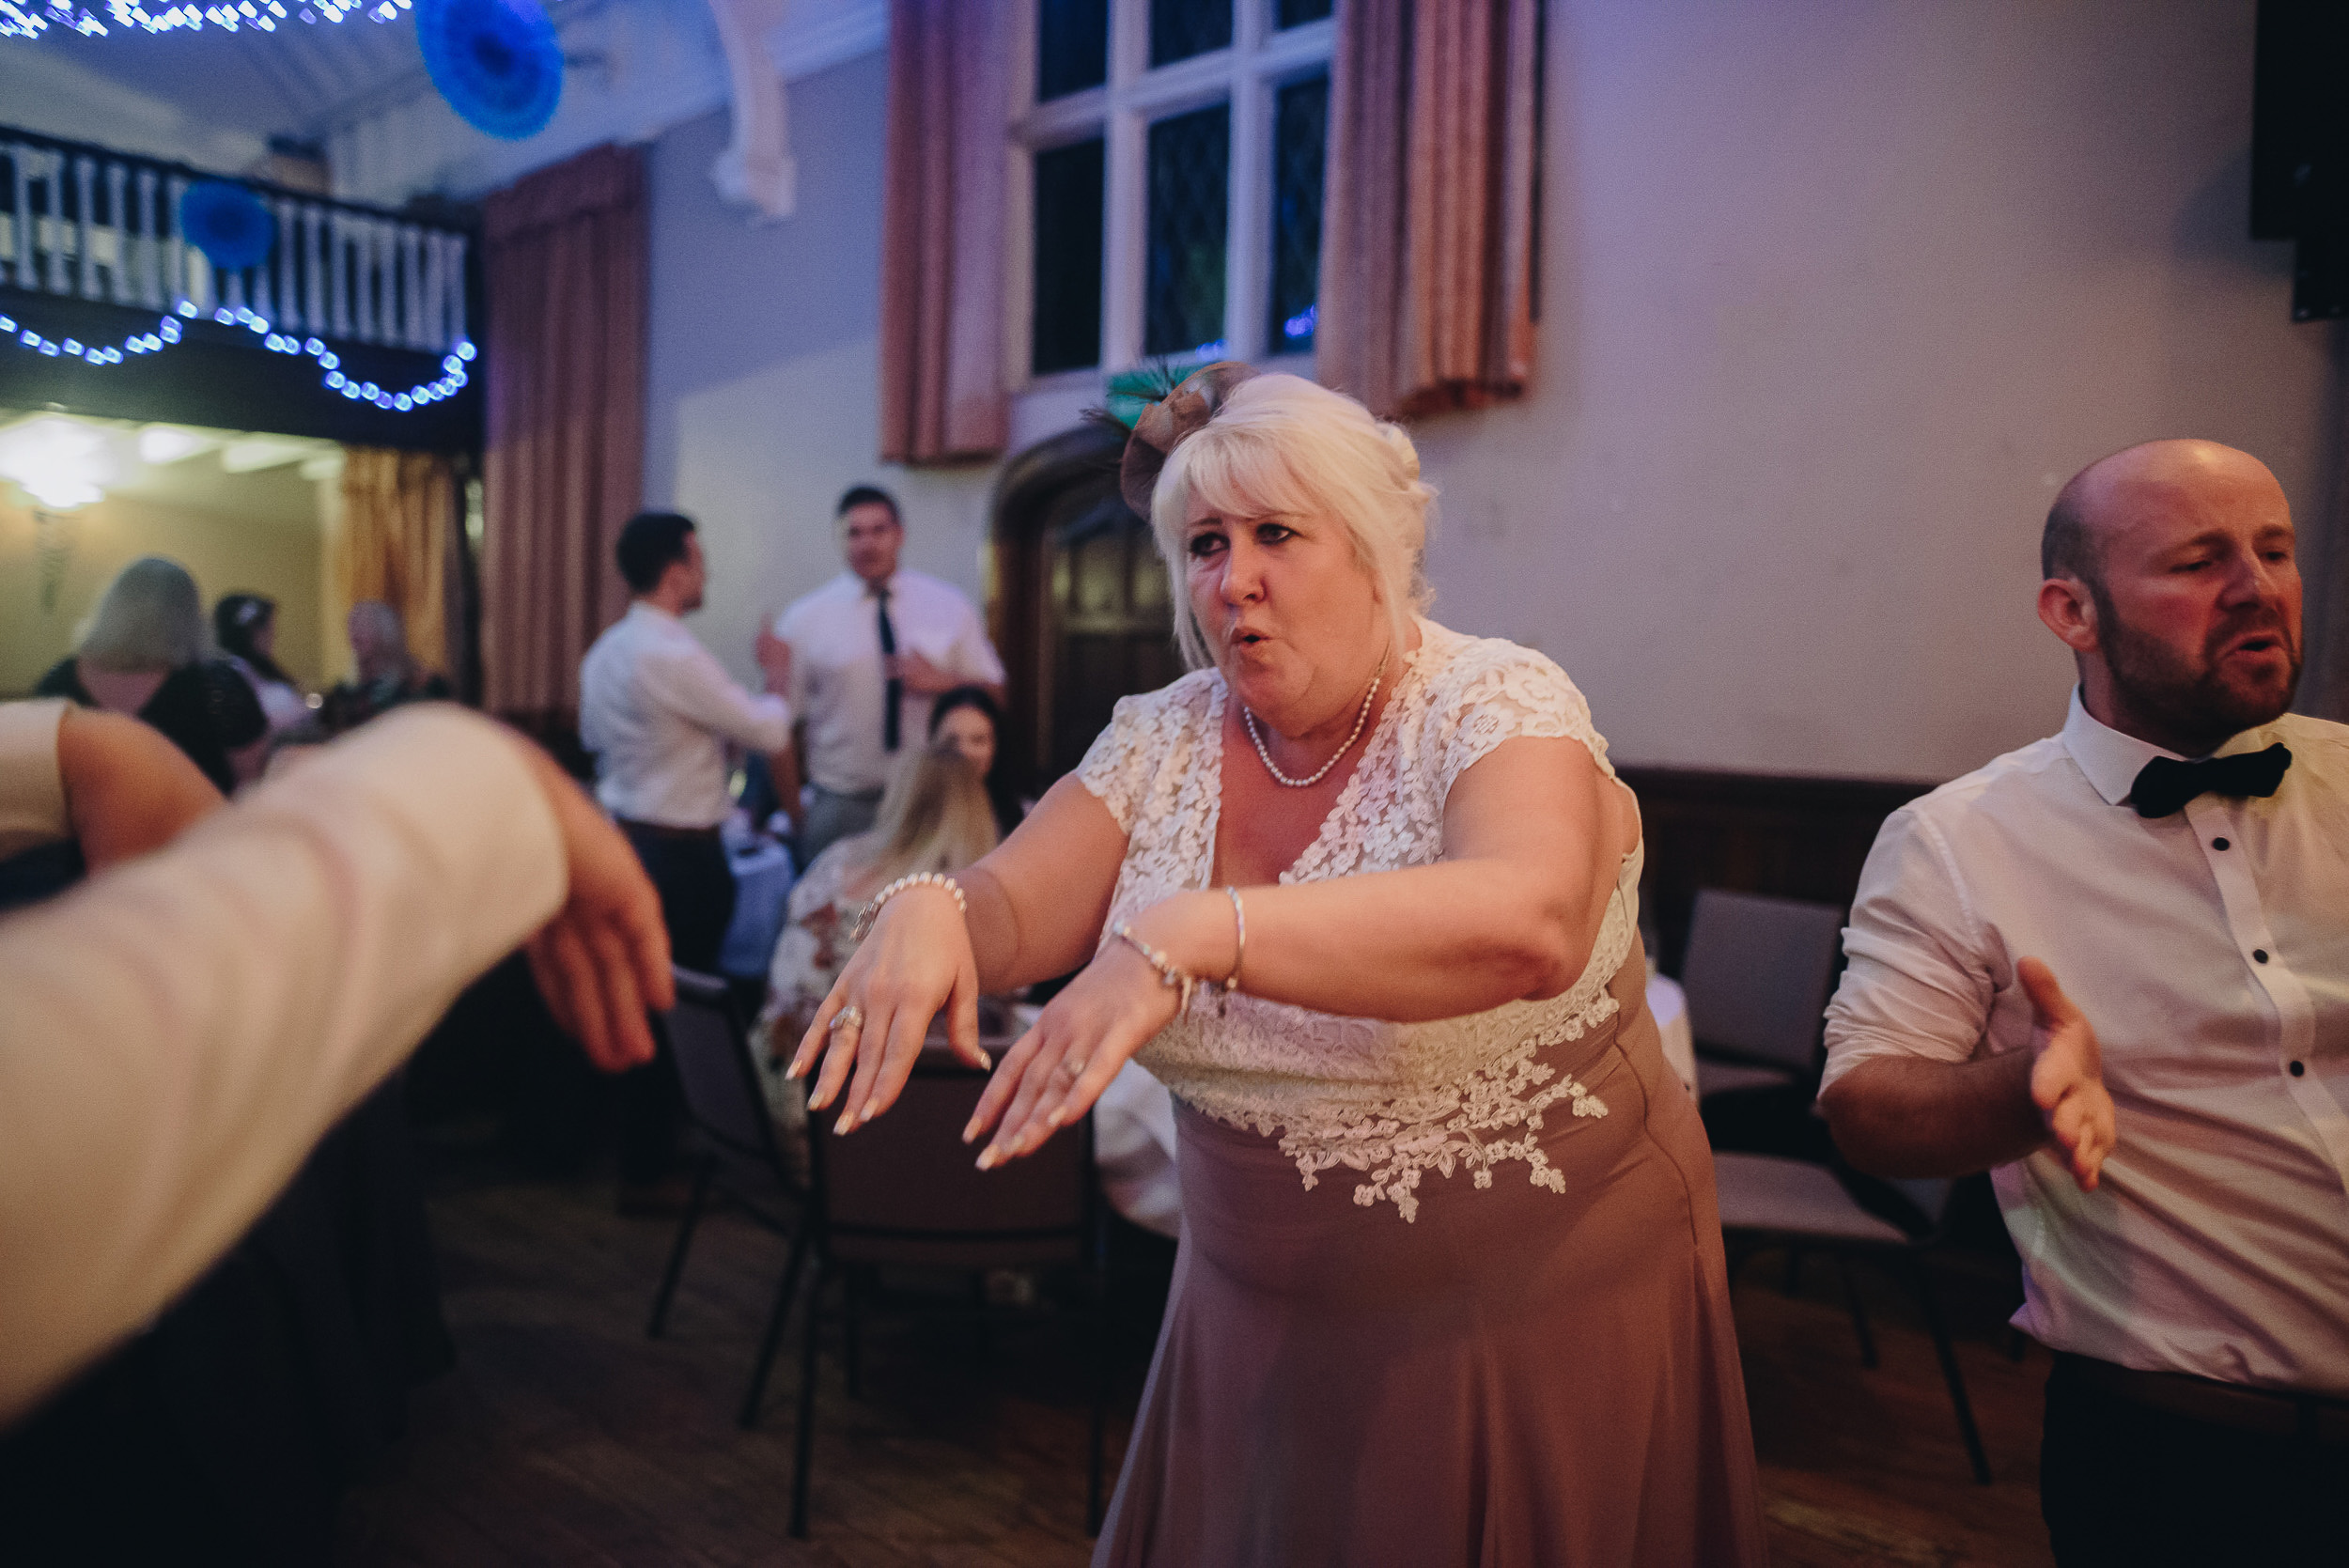 Smithills-hall-wedding-manchester-the-barlow-edgworth-hadfield-141.jpg